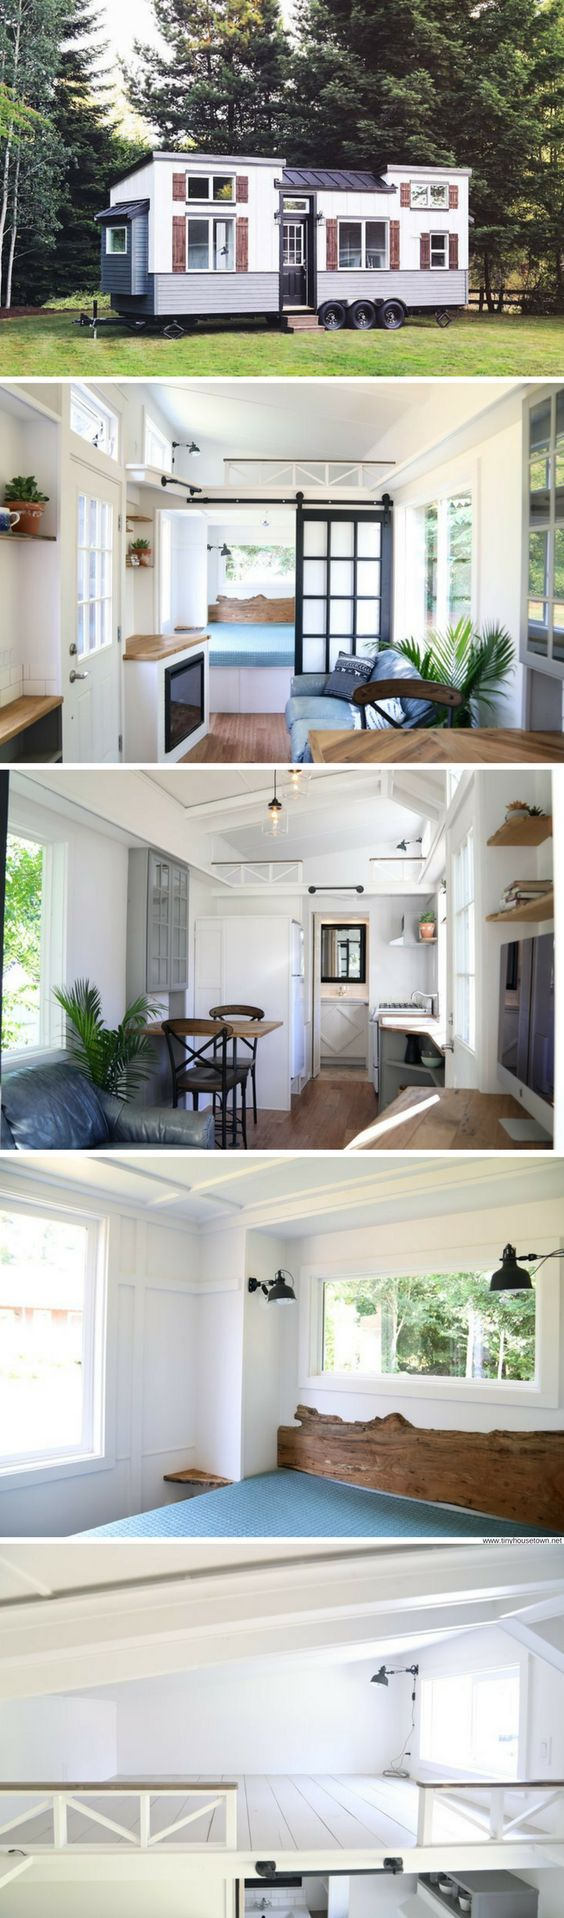 2958 best Design - Tiny house images on Pinterest | Tiny house cabin ...